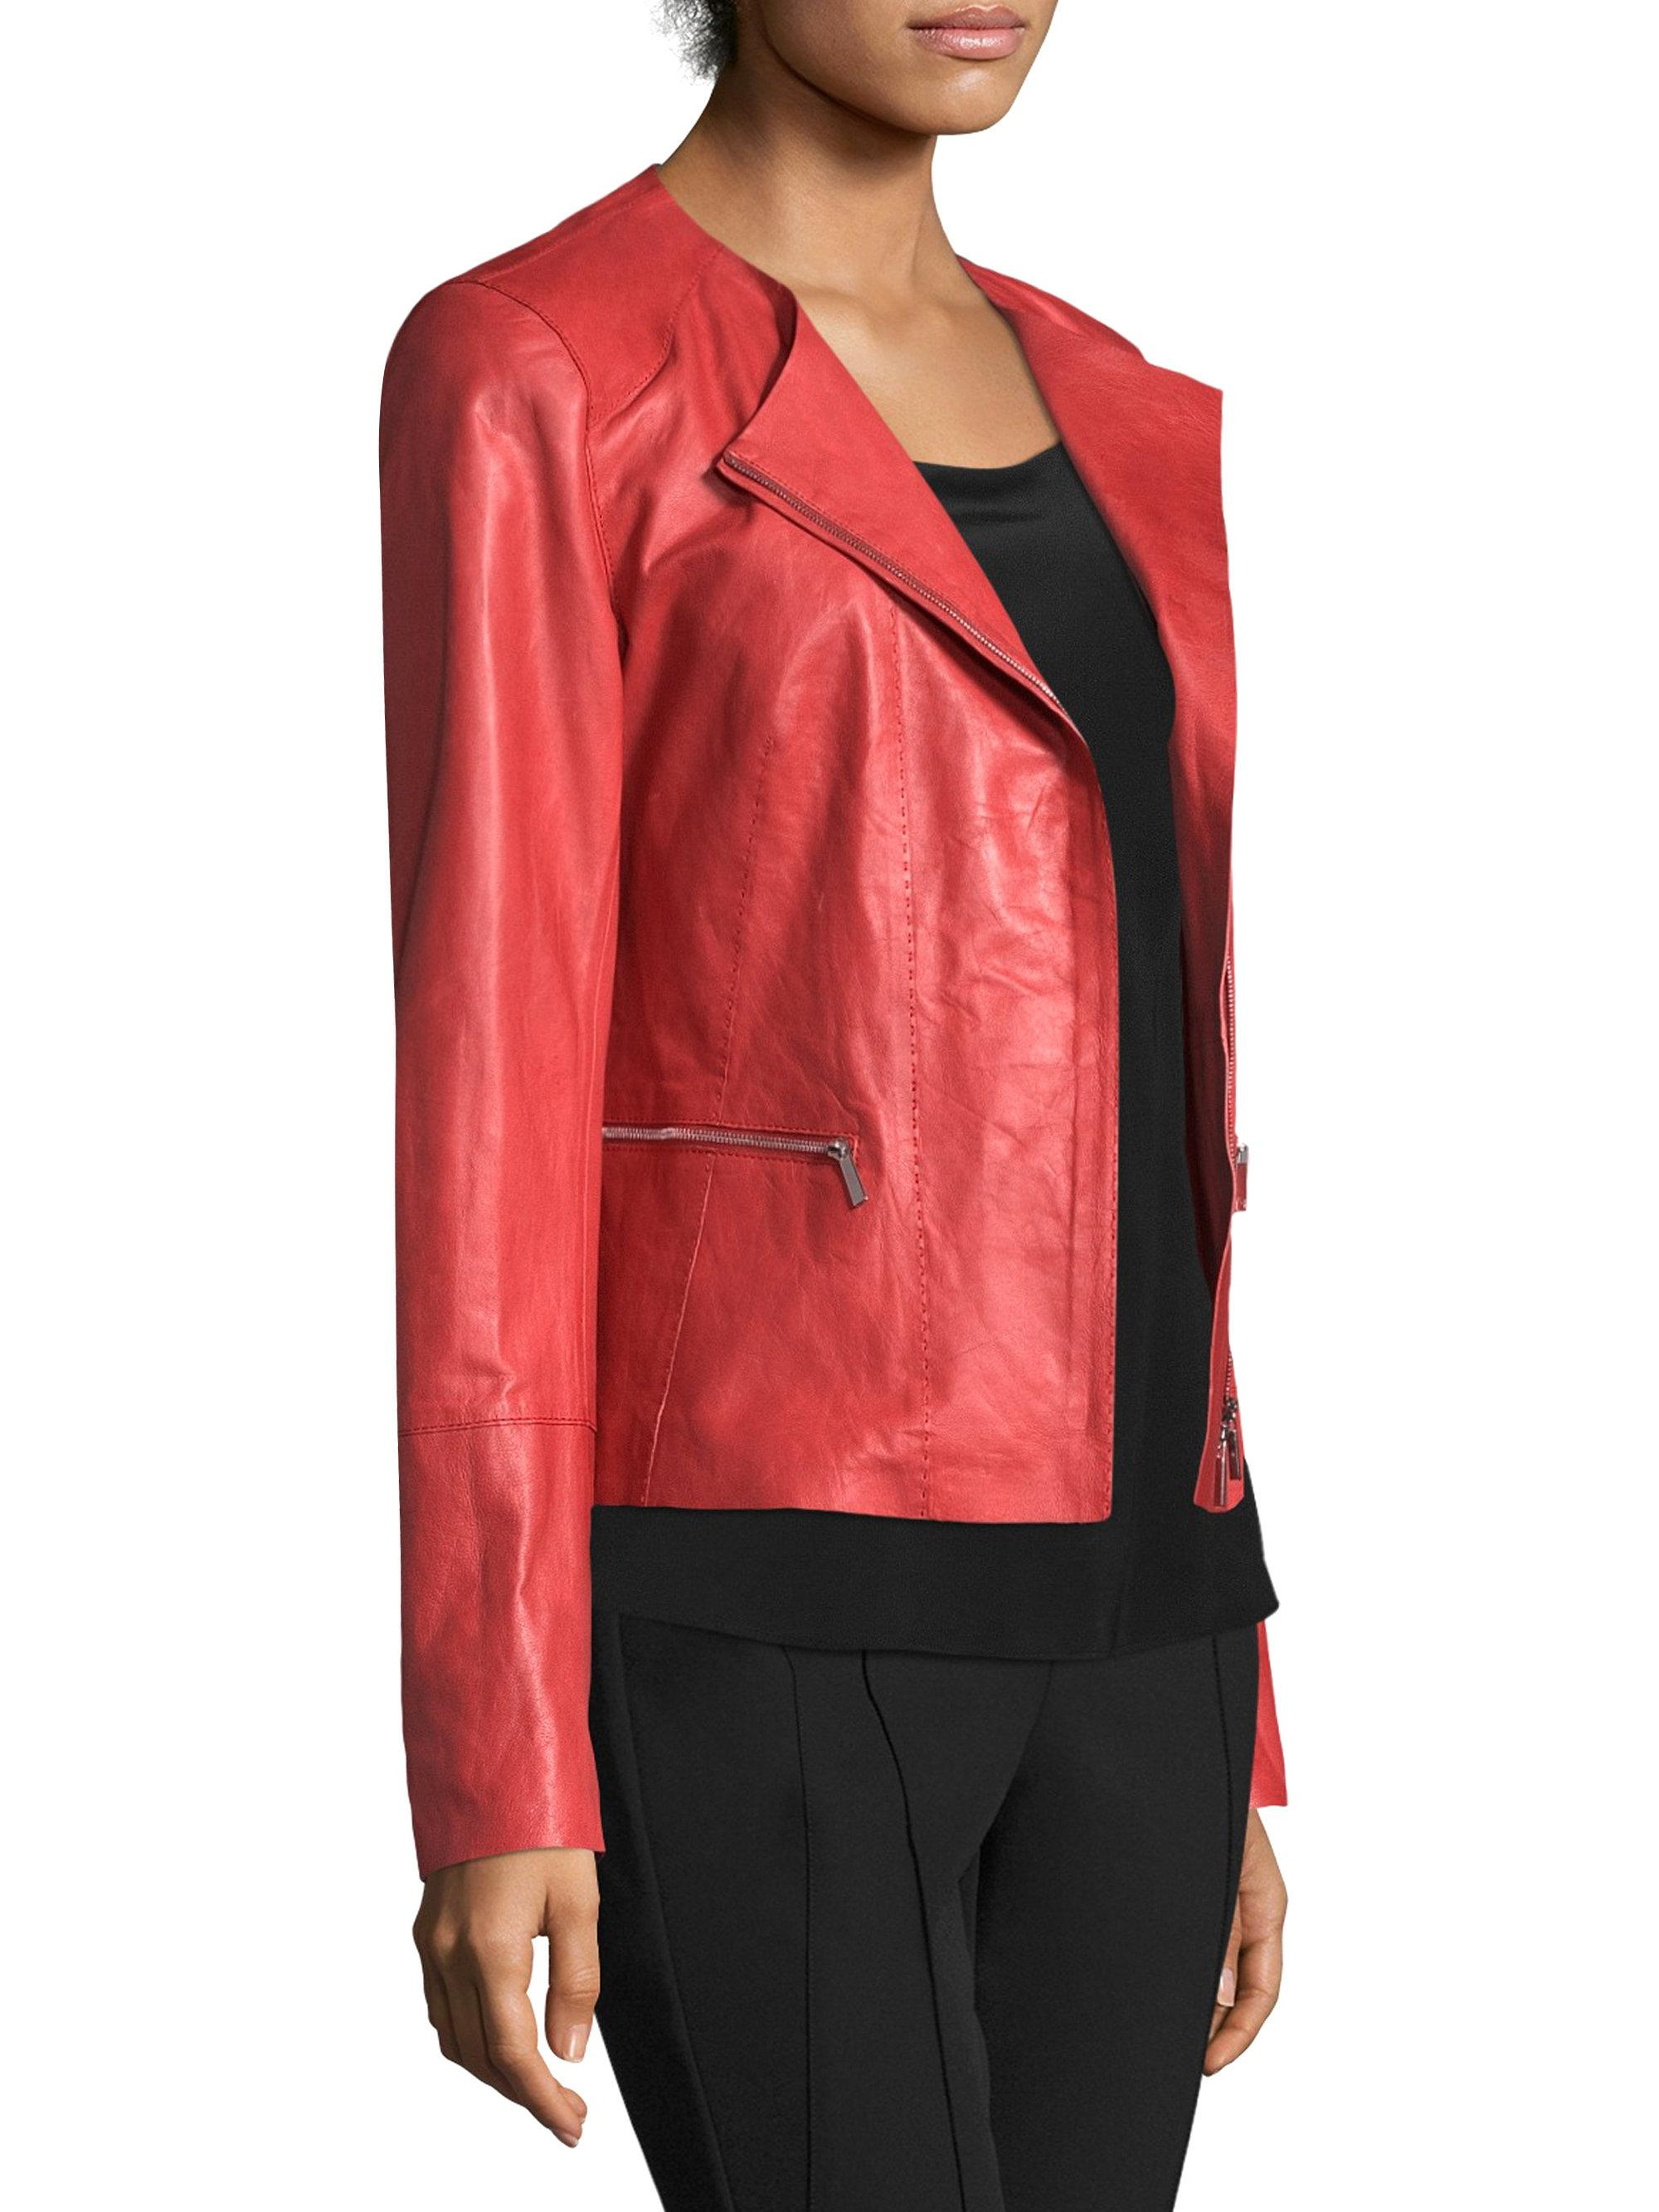 b87f3bc3d53 Lyst - Lafayette 148 New York Caridee Leather Jacket in Red